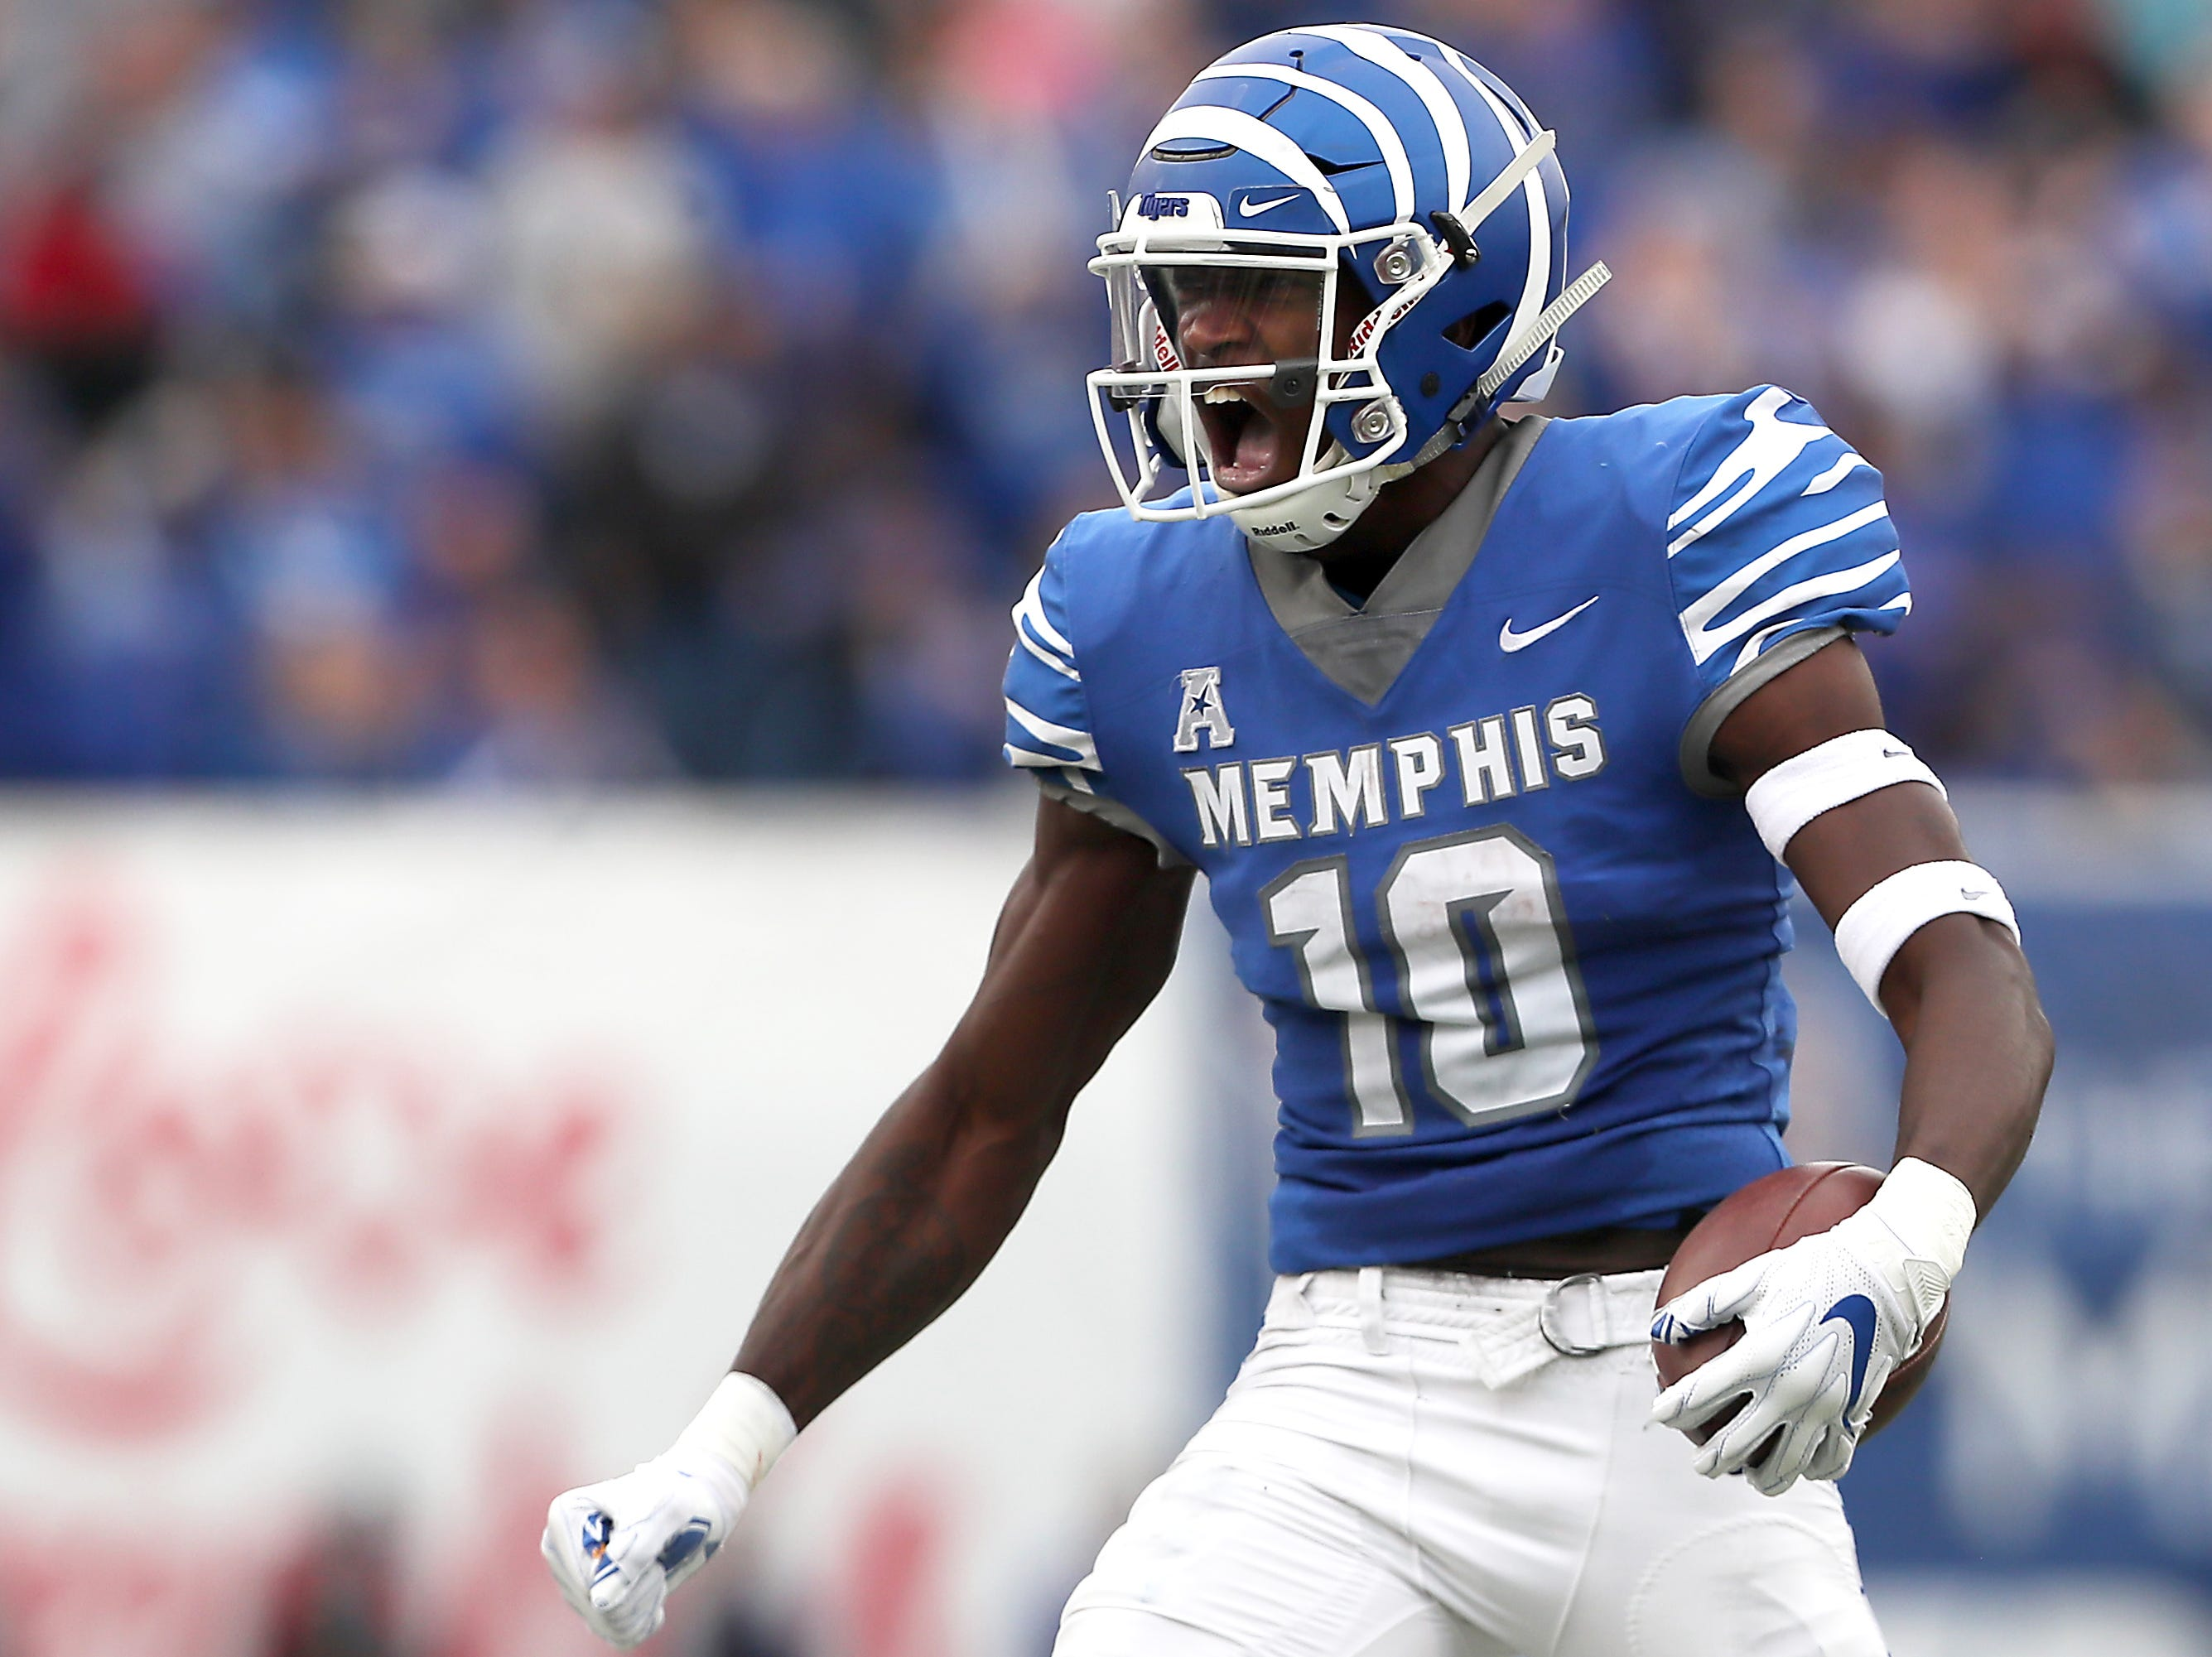 Memphis receiver Damonte Coxie celebrates a first down catch against UCF during their game at the Liberty Bowl in Memphis, Tenn., Saturday, October 13, 2018.